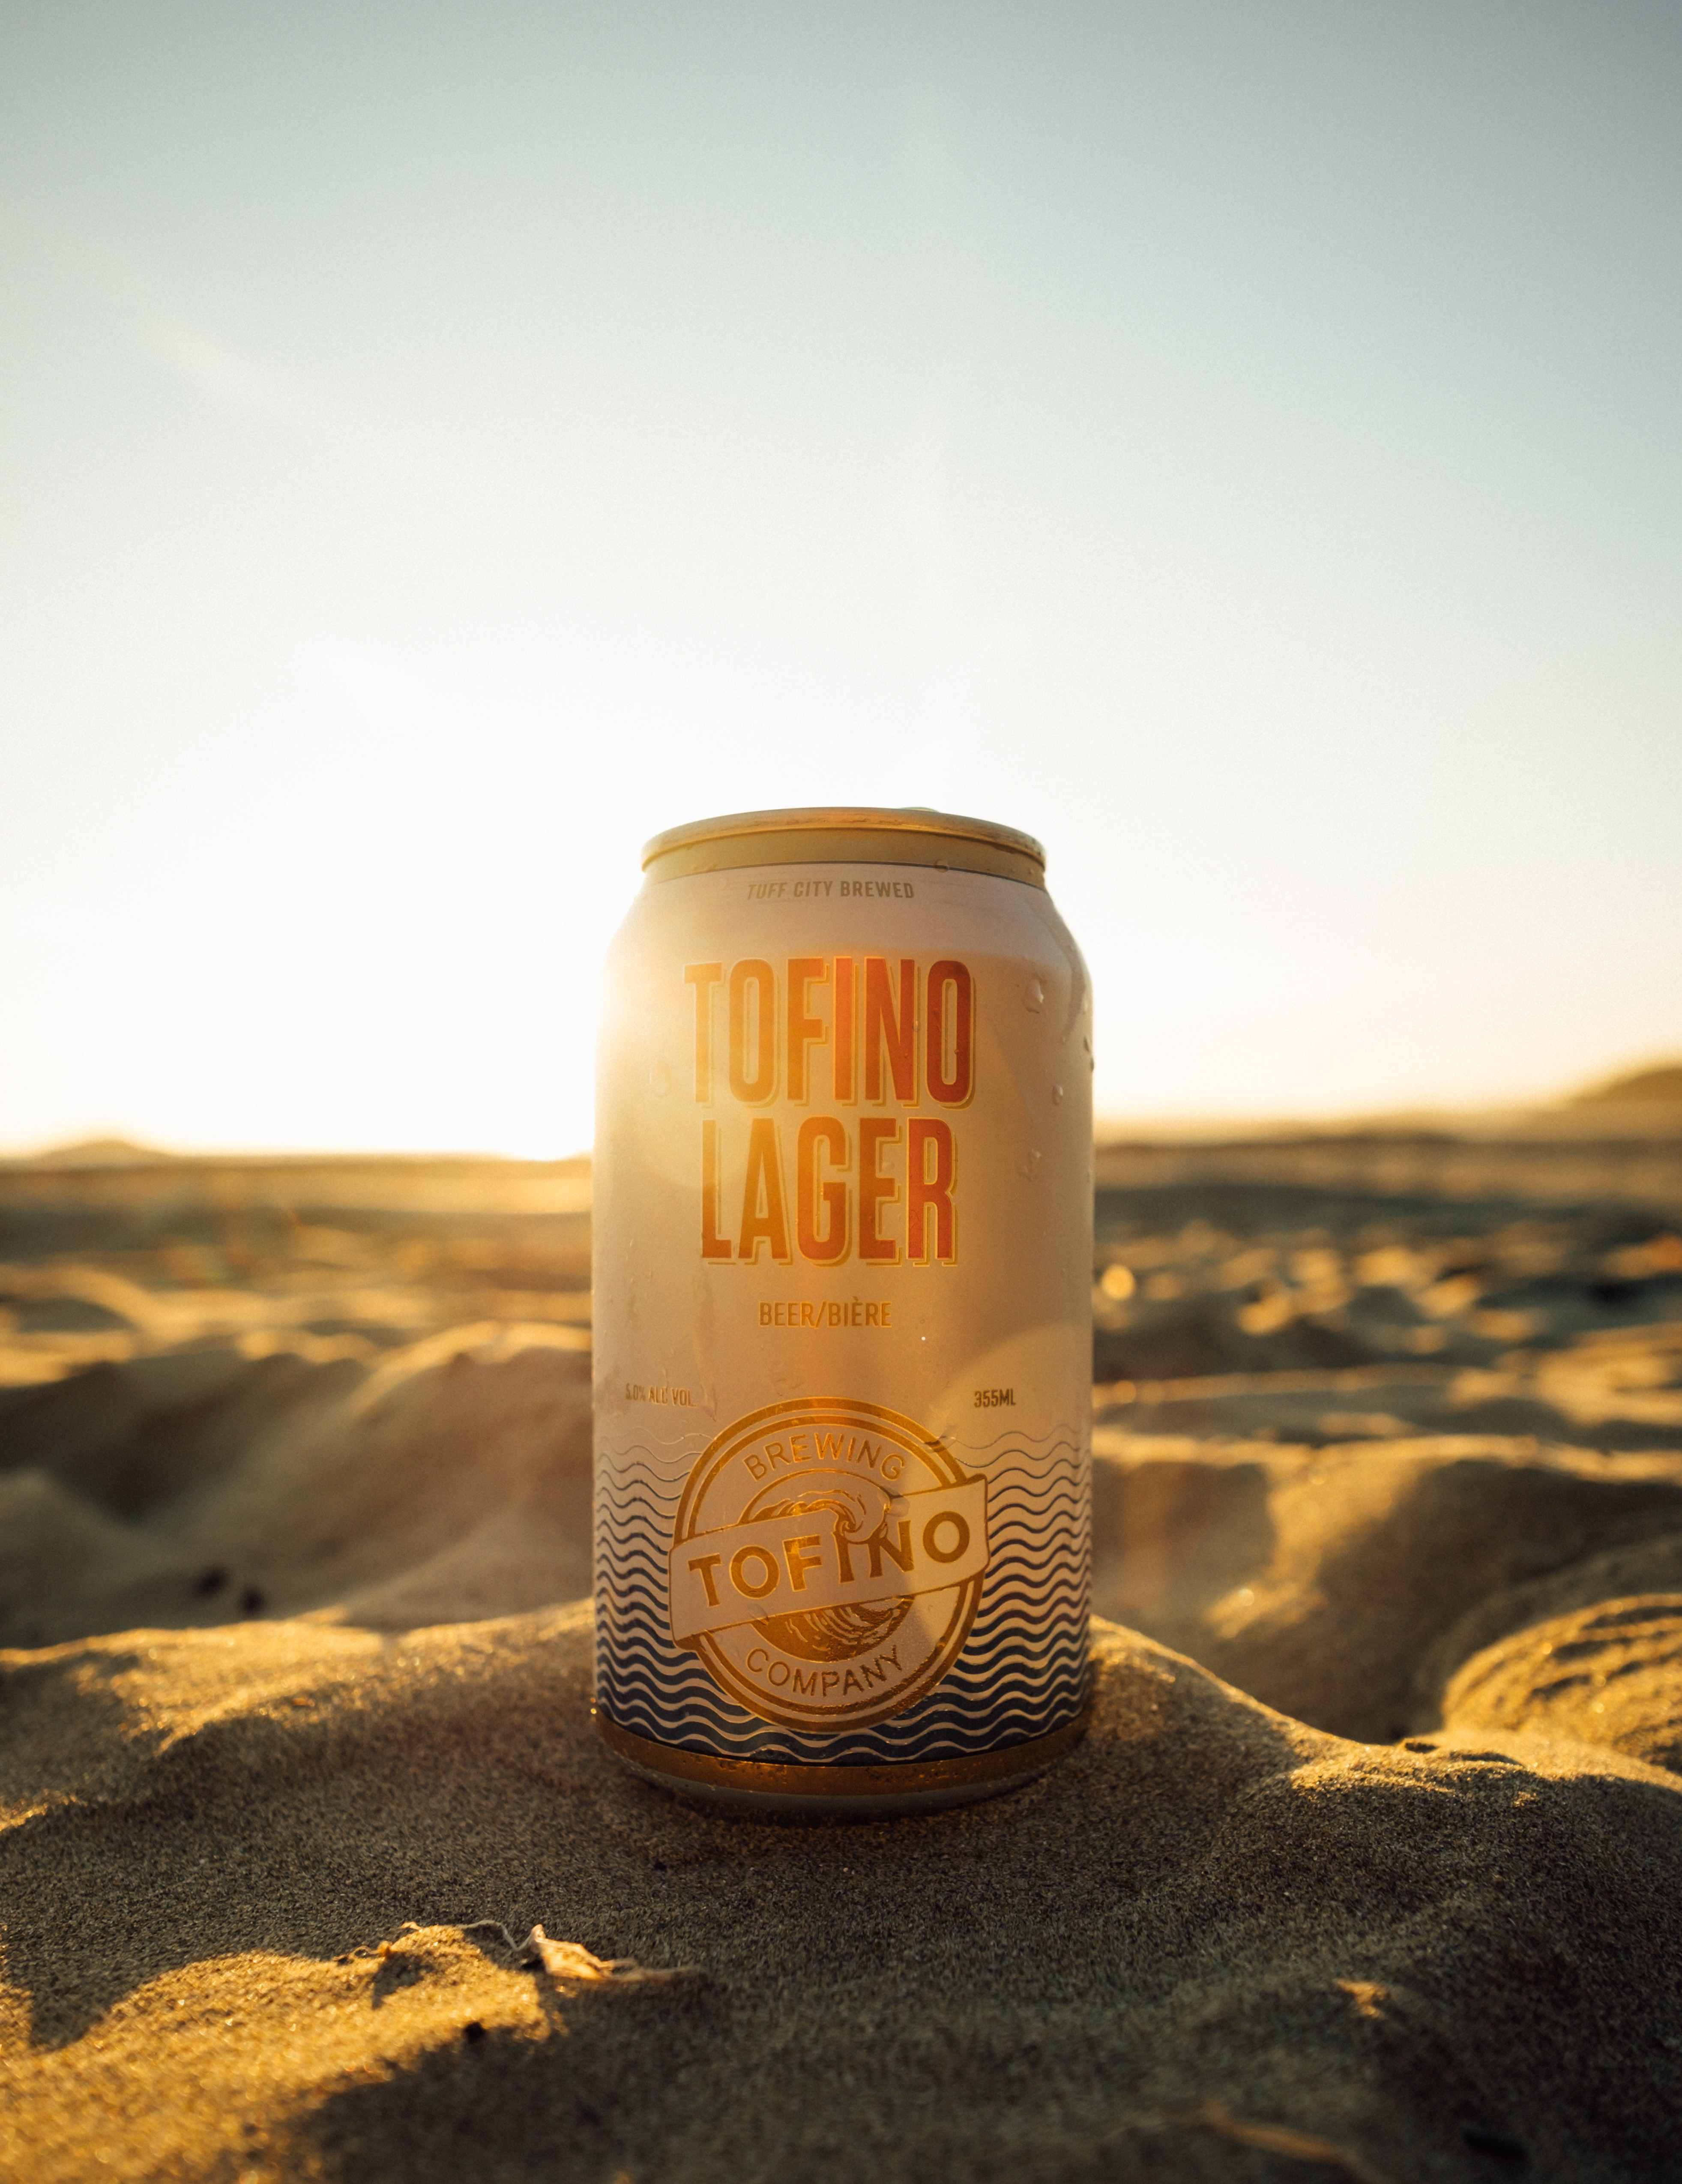 Tofino Lager beer can on sand